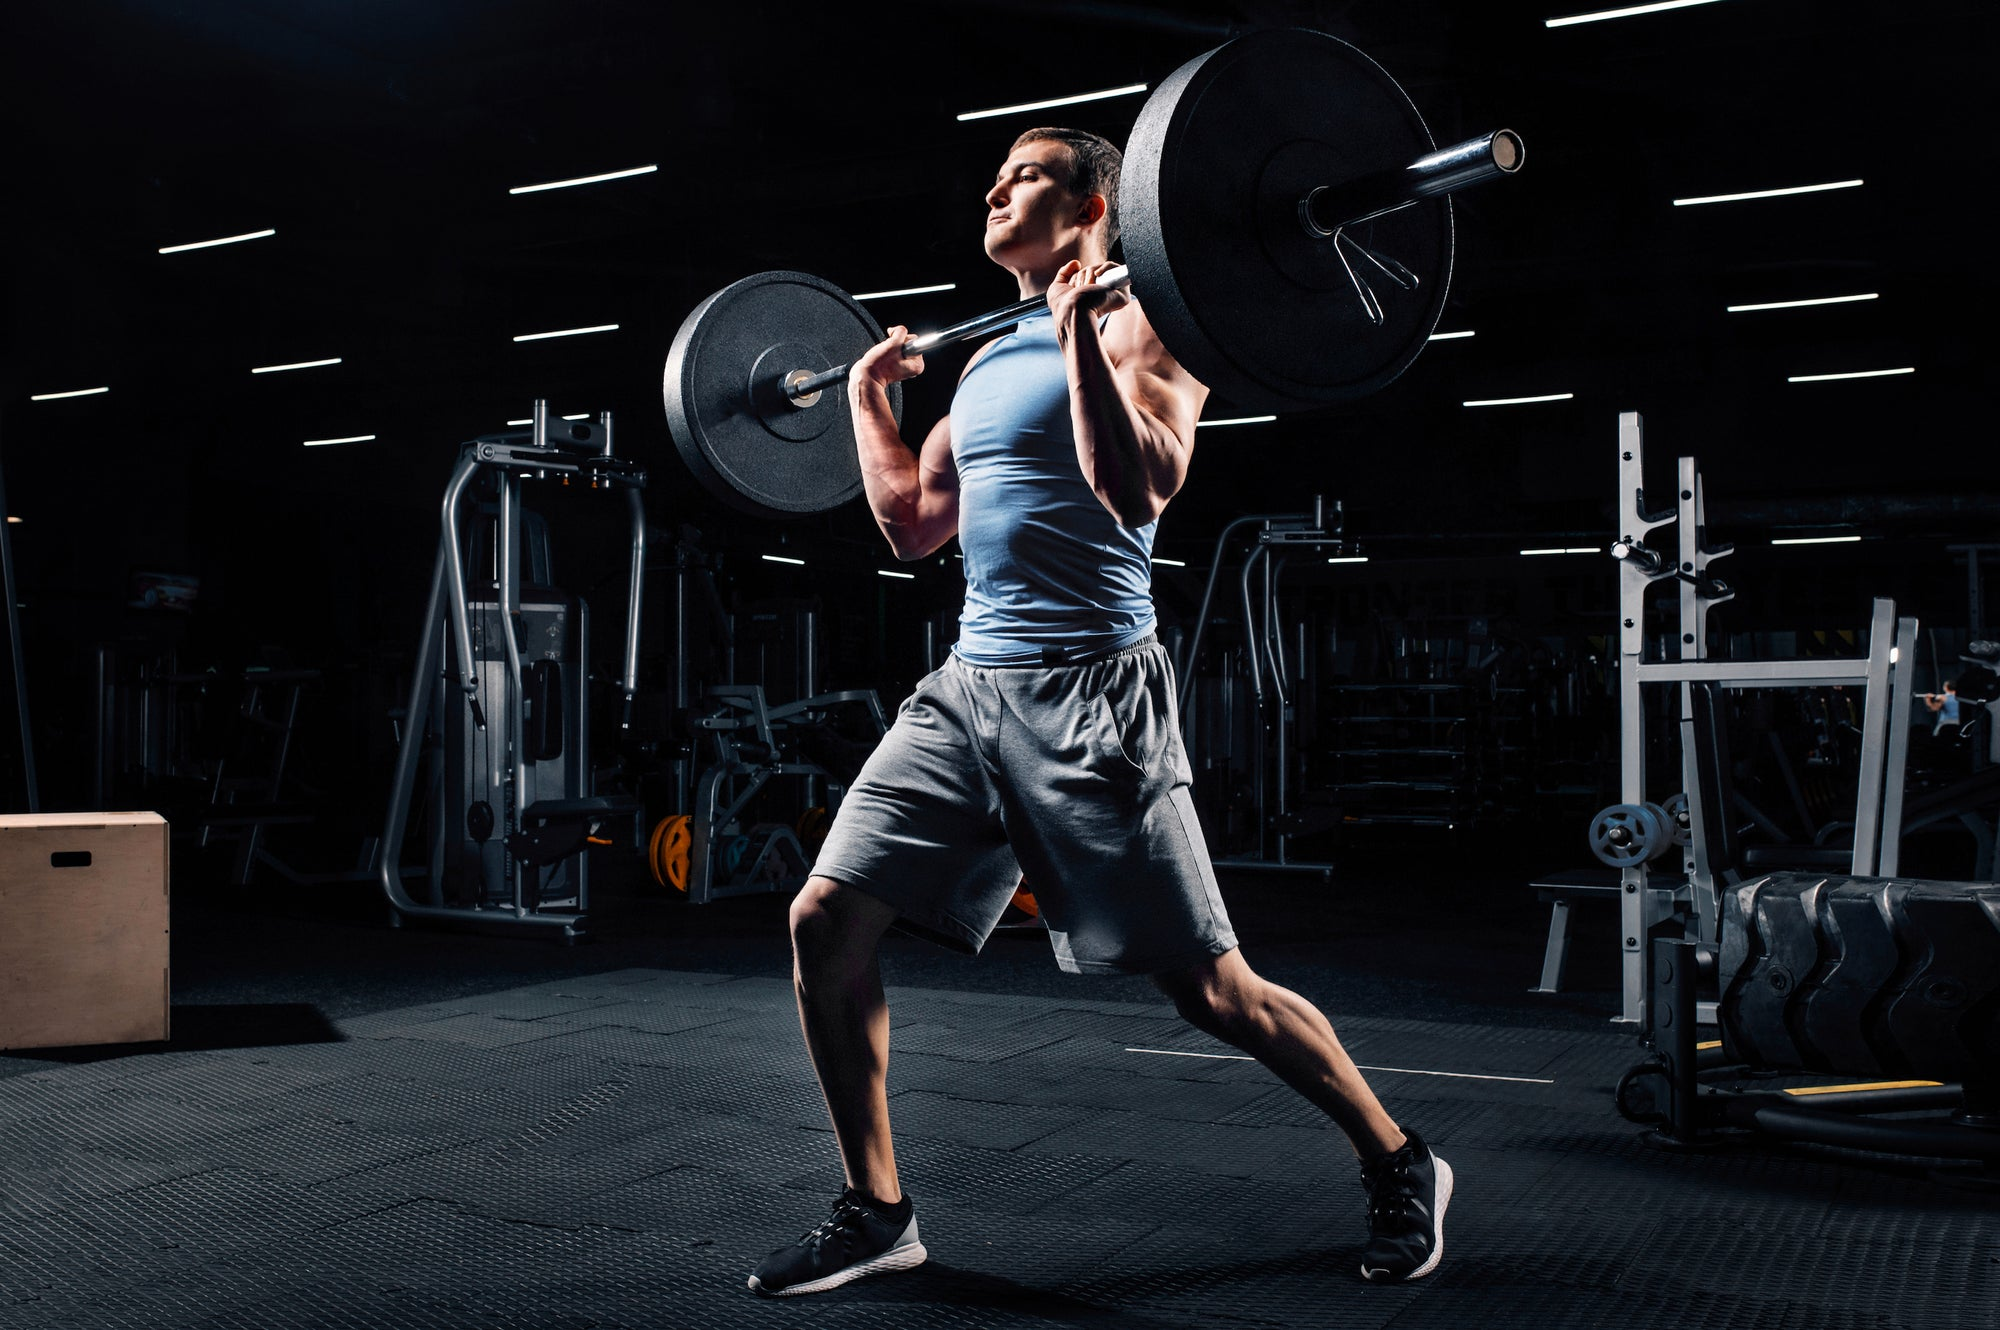 How to Master the High Pull Exercise for Maximum Power